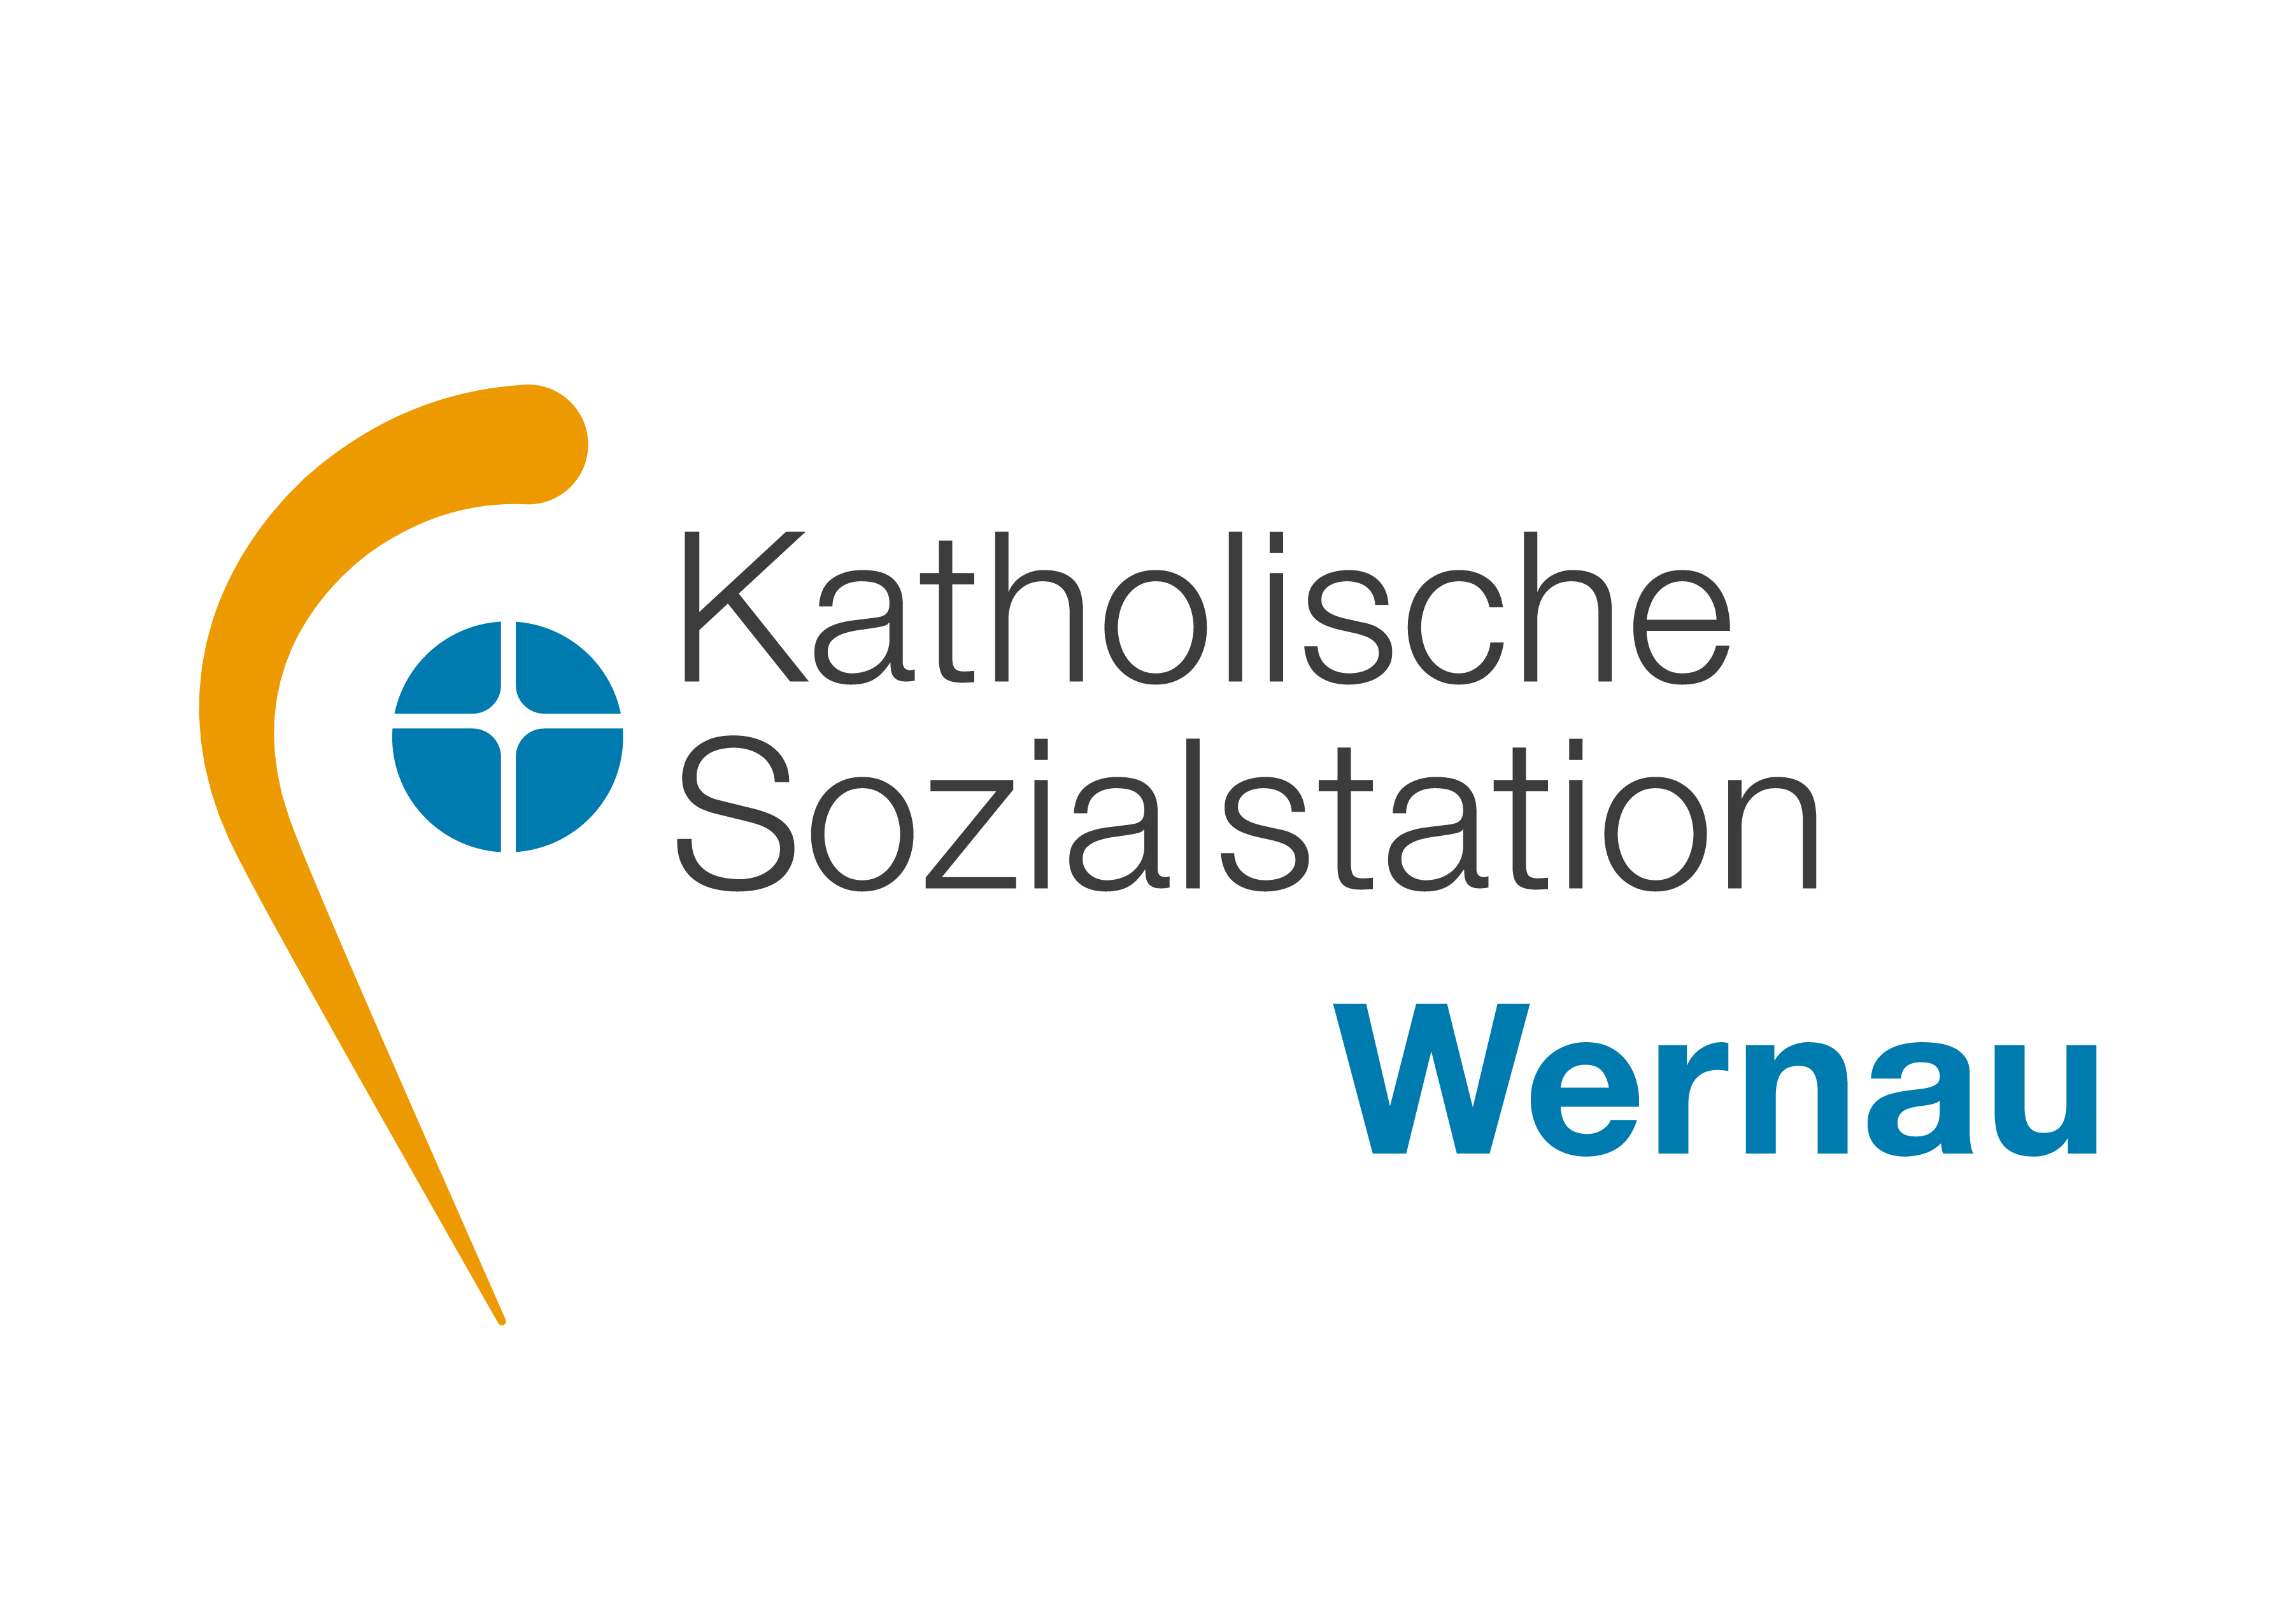 KSS Logos Final Wernau